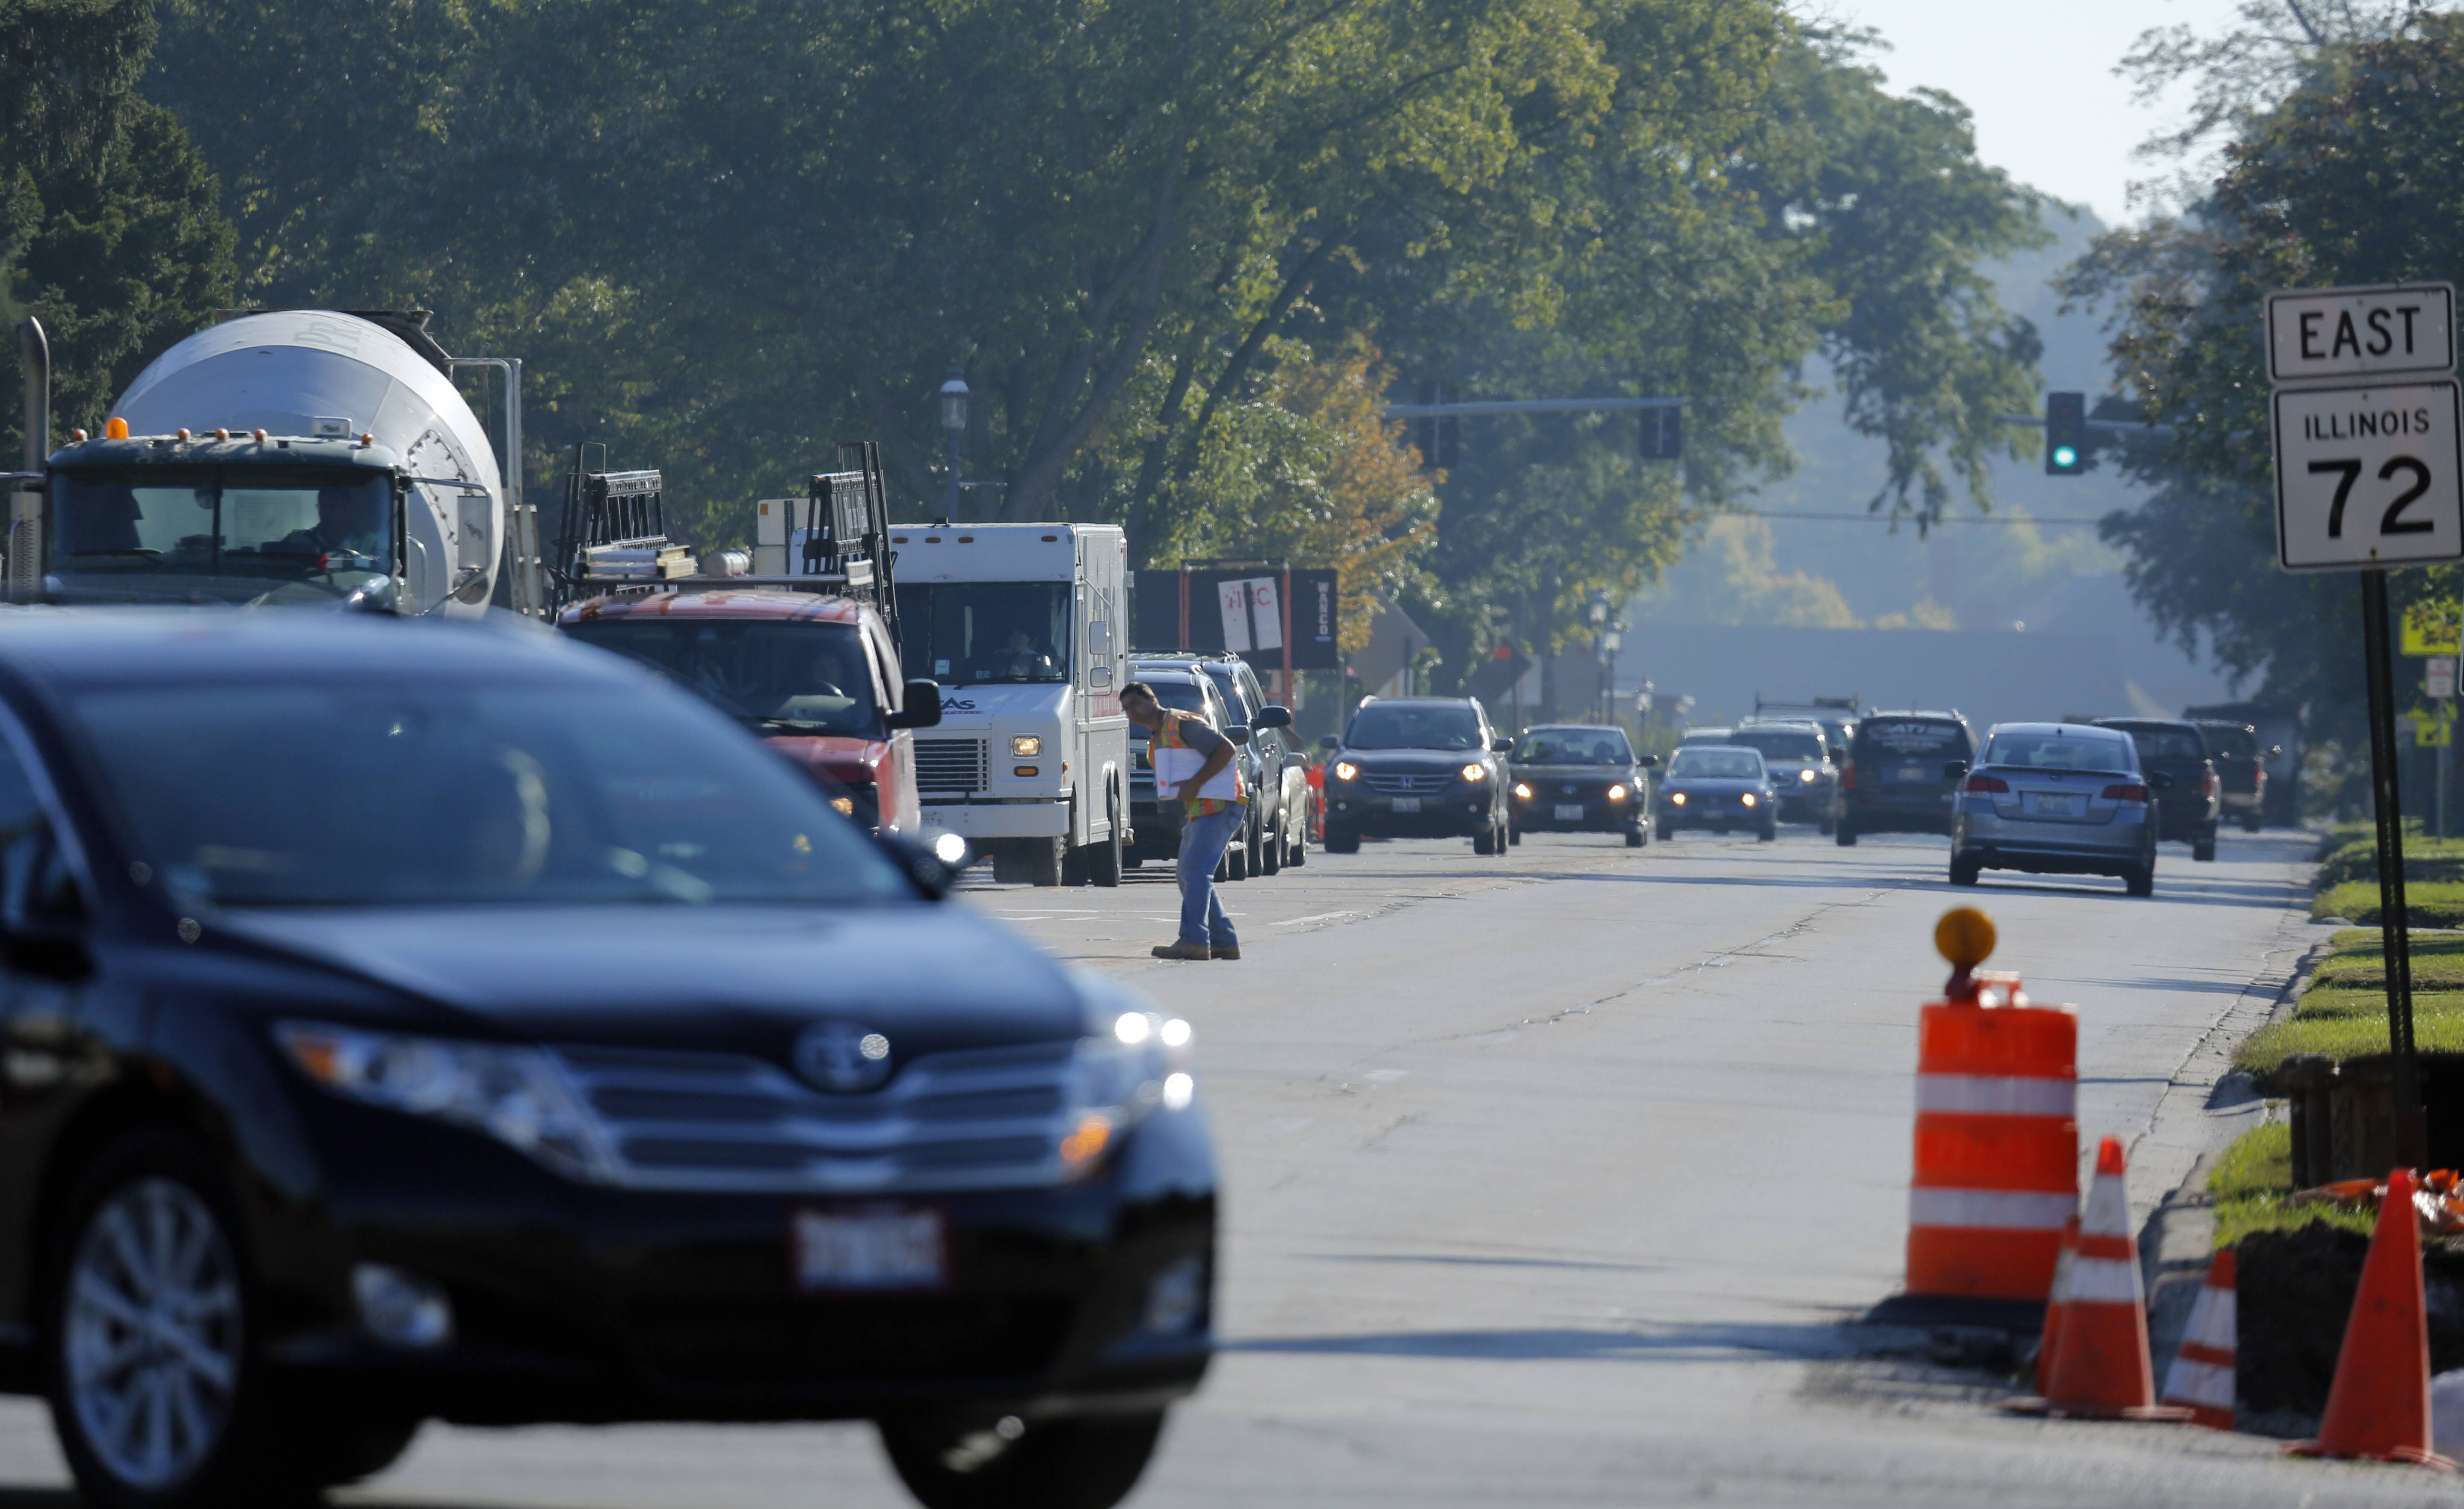 Spring brings warmer weather -- and the resumption of a construction project along routes 31 and 72 in West Dundee.